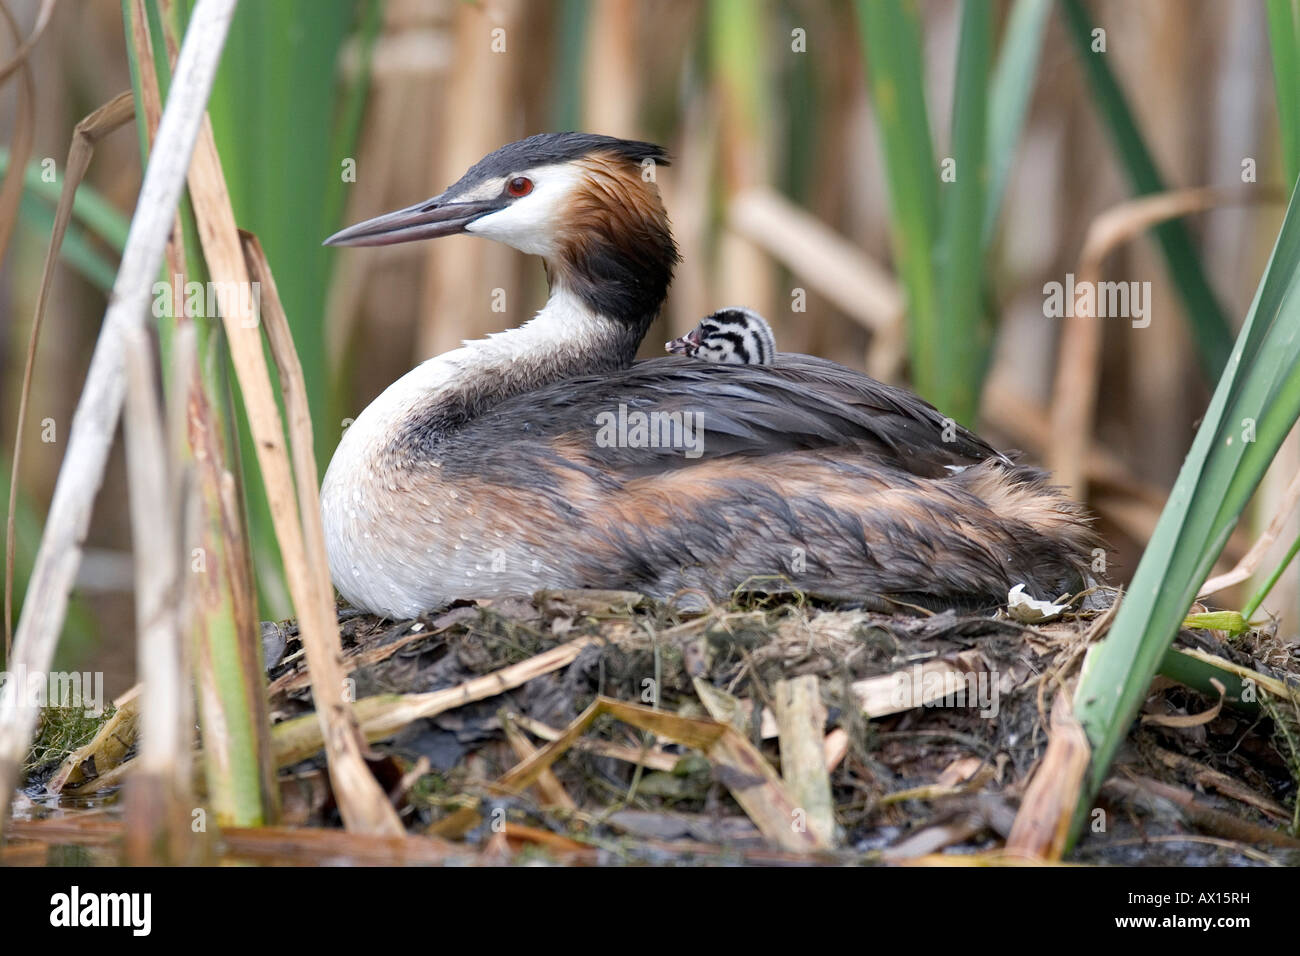 Great Crested Grebe (Podiceps cristatus) sitting on nest, with hatchling visible, Vulkaneifel, Germany, Europe Stock Photo